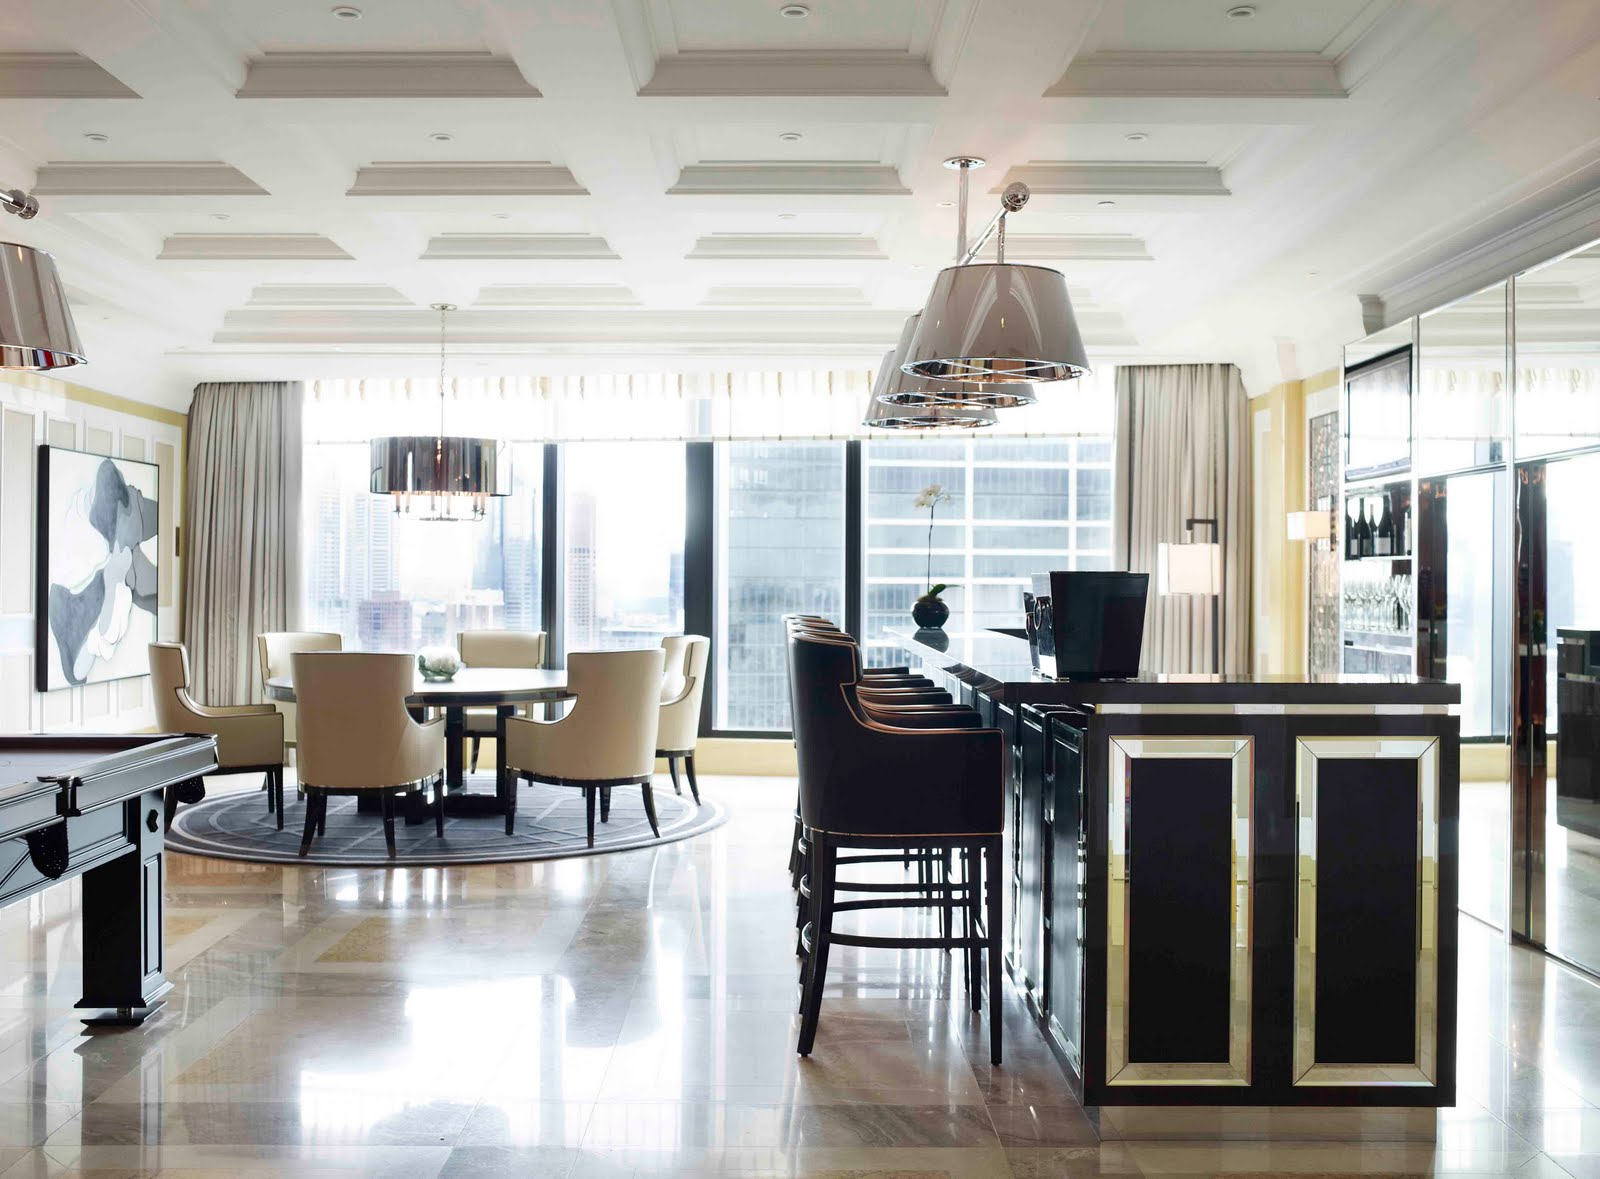 Superior Blainey North Has Created Some Of The Most Spectacular Australian Interiors  In Recent Years. I Was Fortunate Enough To Enjoy The Opulence Of The 54  Park St ...